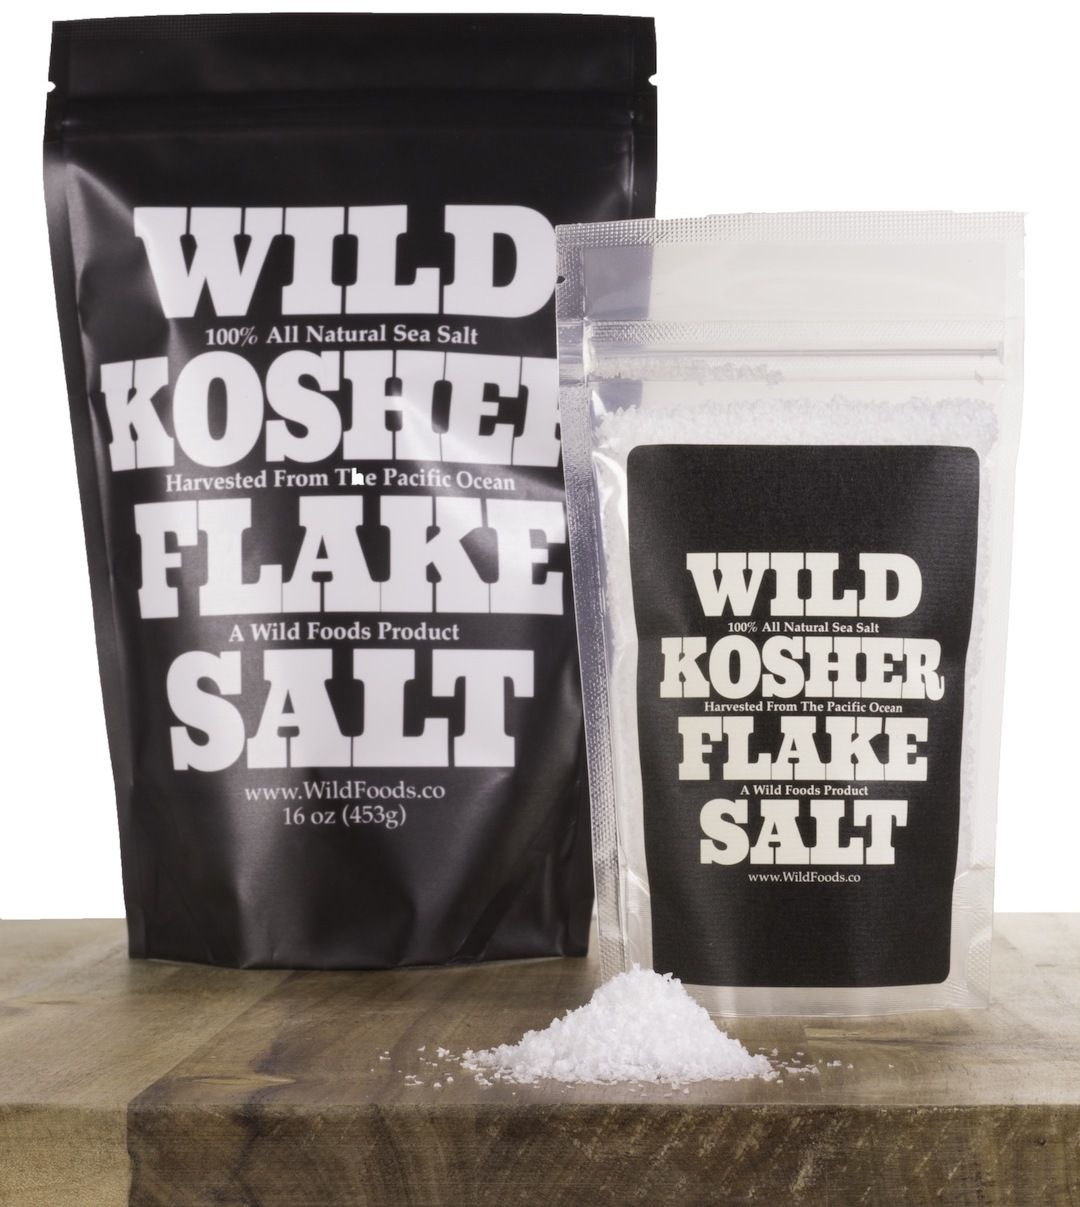 Do you know why Kosher Salt is called